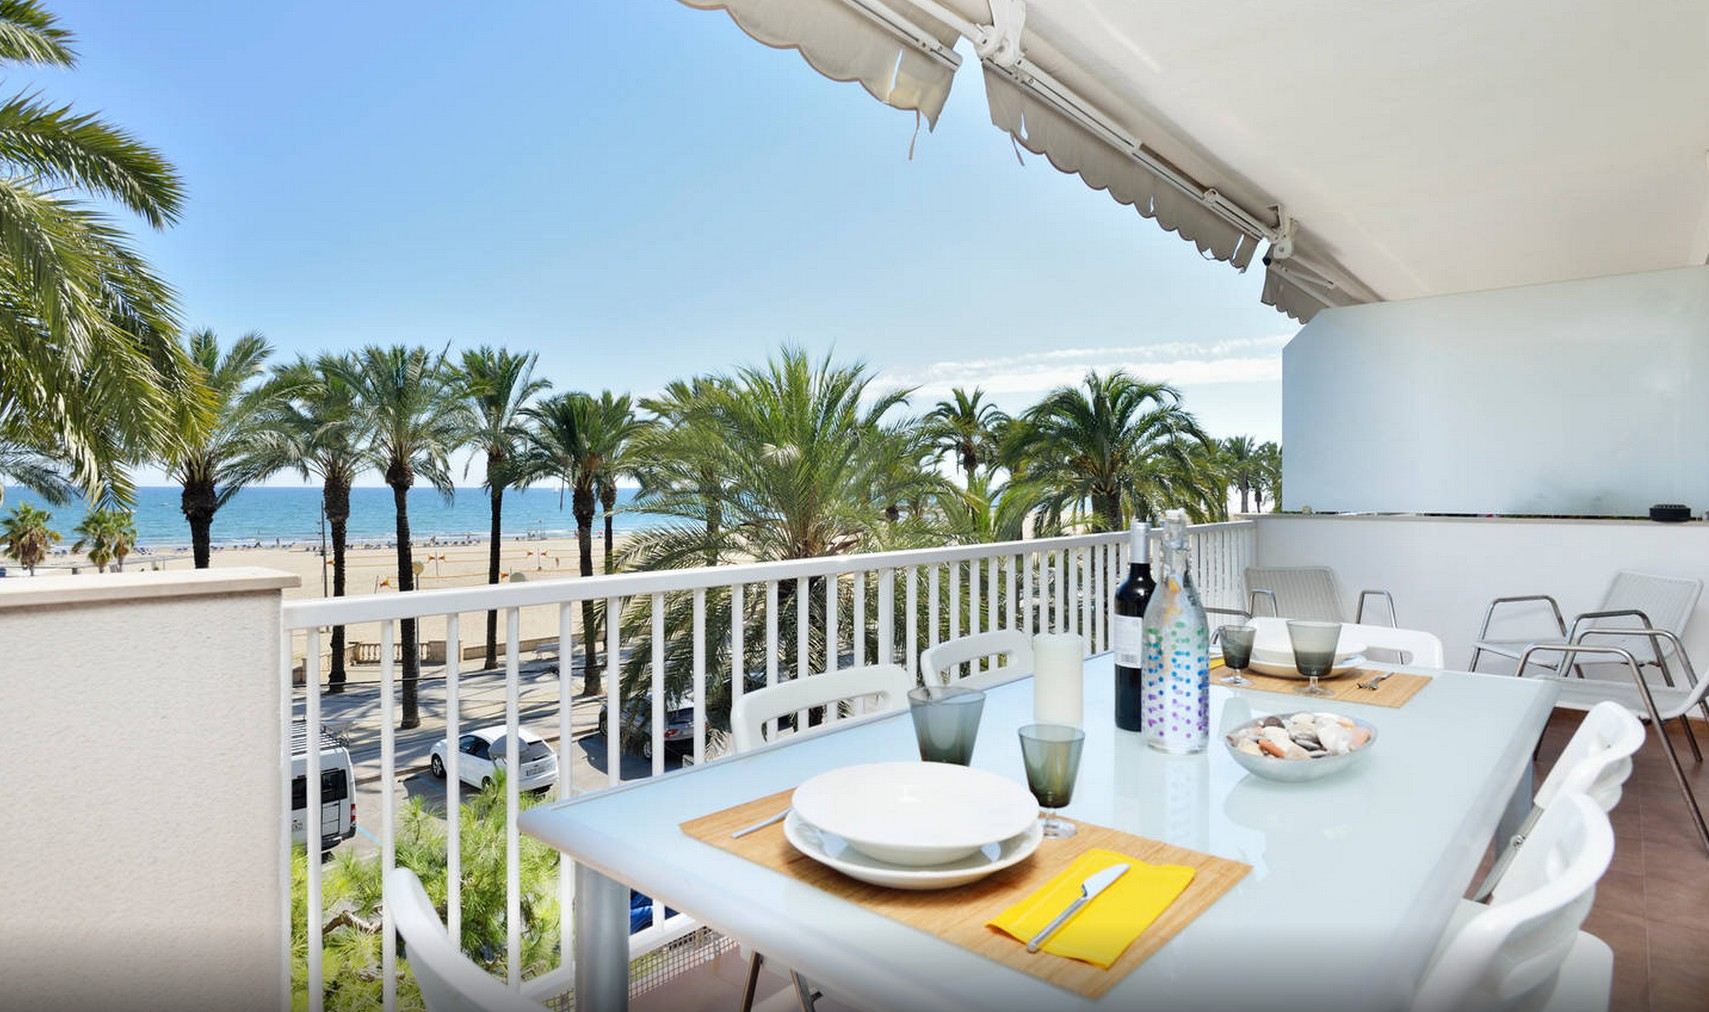 Apartment for Sale at Beautiful seafront apartment Other Barcelona, Barcelona 08921 Spain